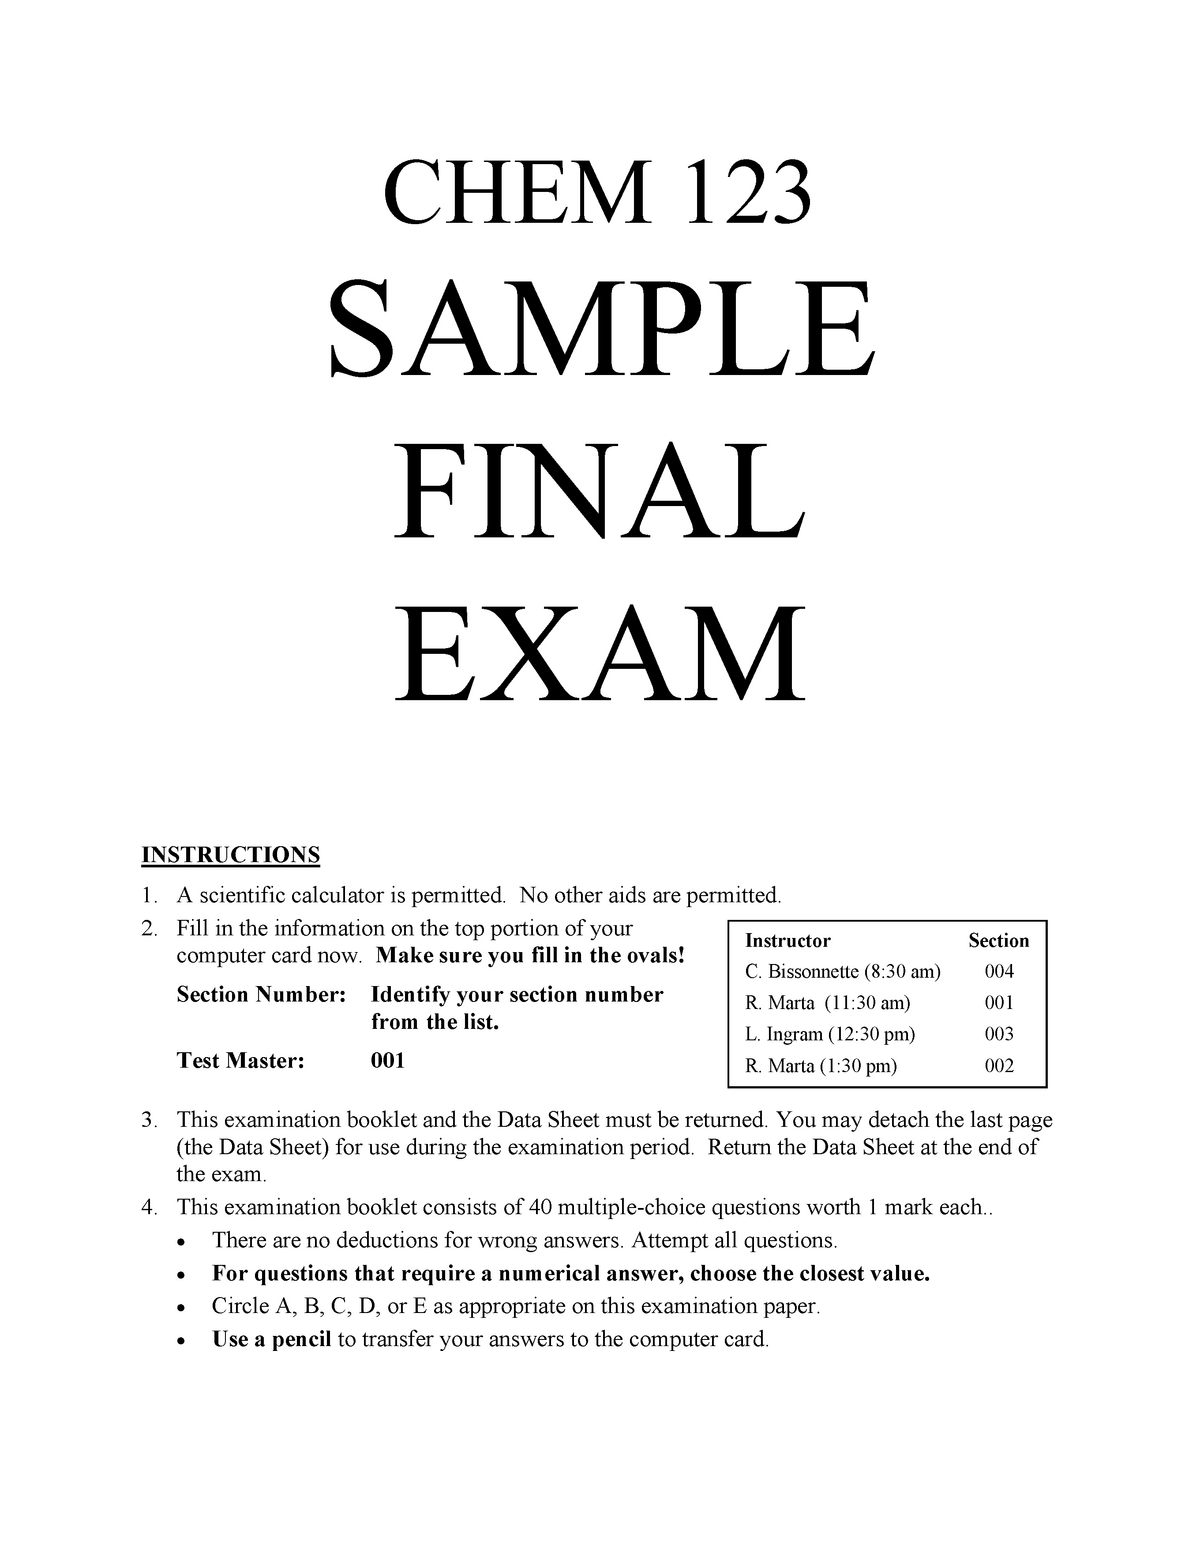 Final exam April 2018, questions and answers - Chem 123